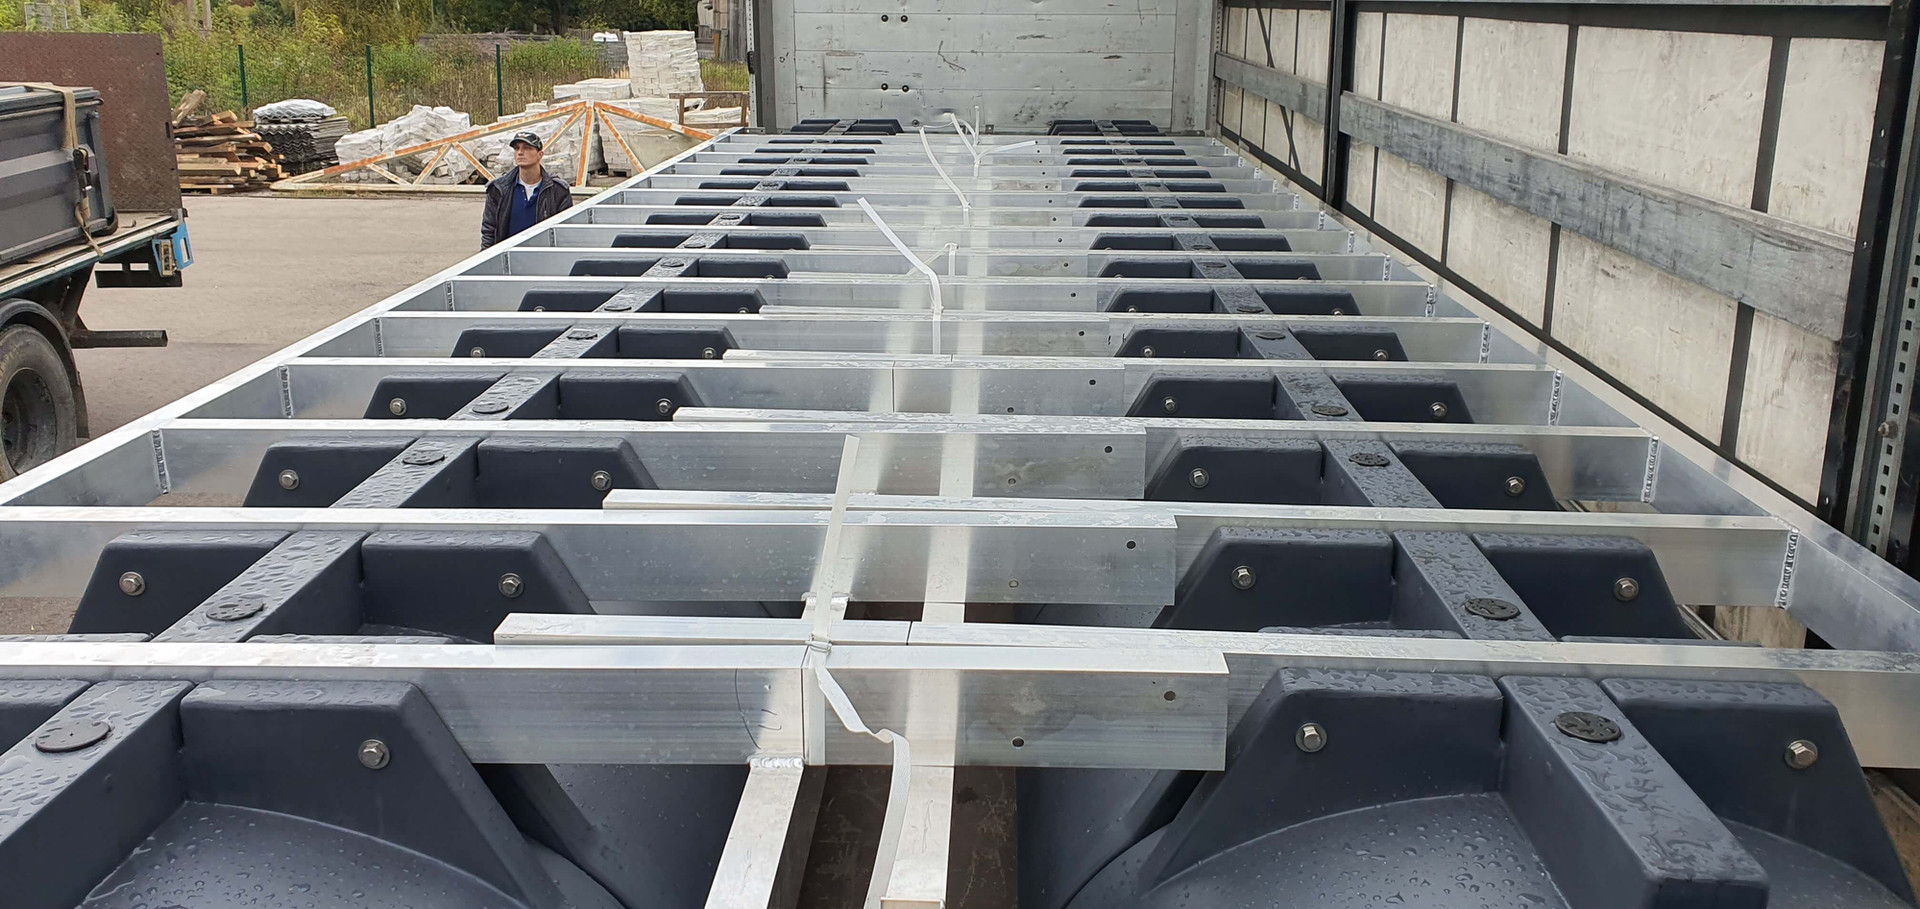 Vessel hull parts loaded for transportation